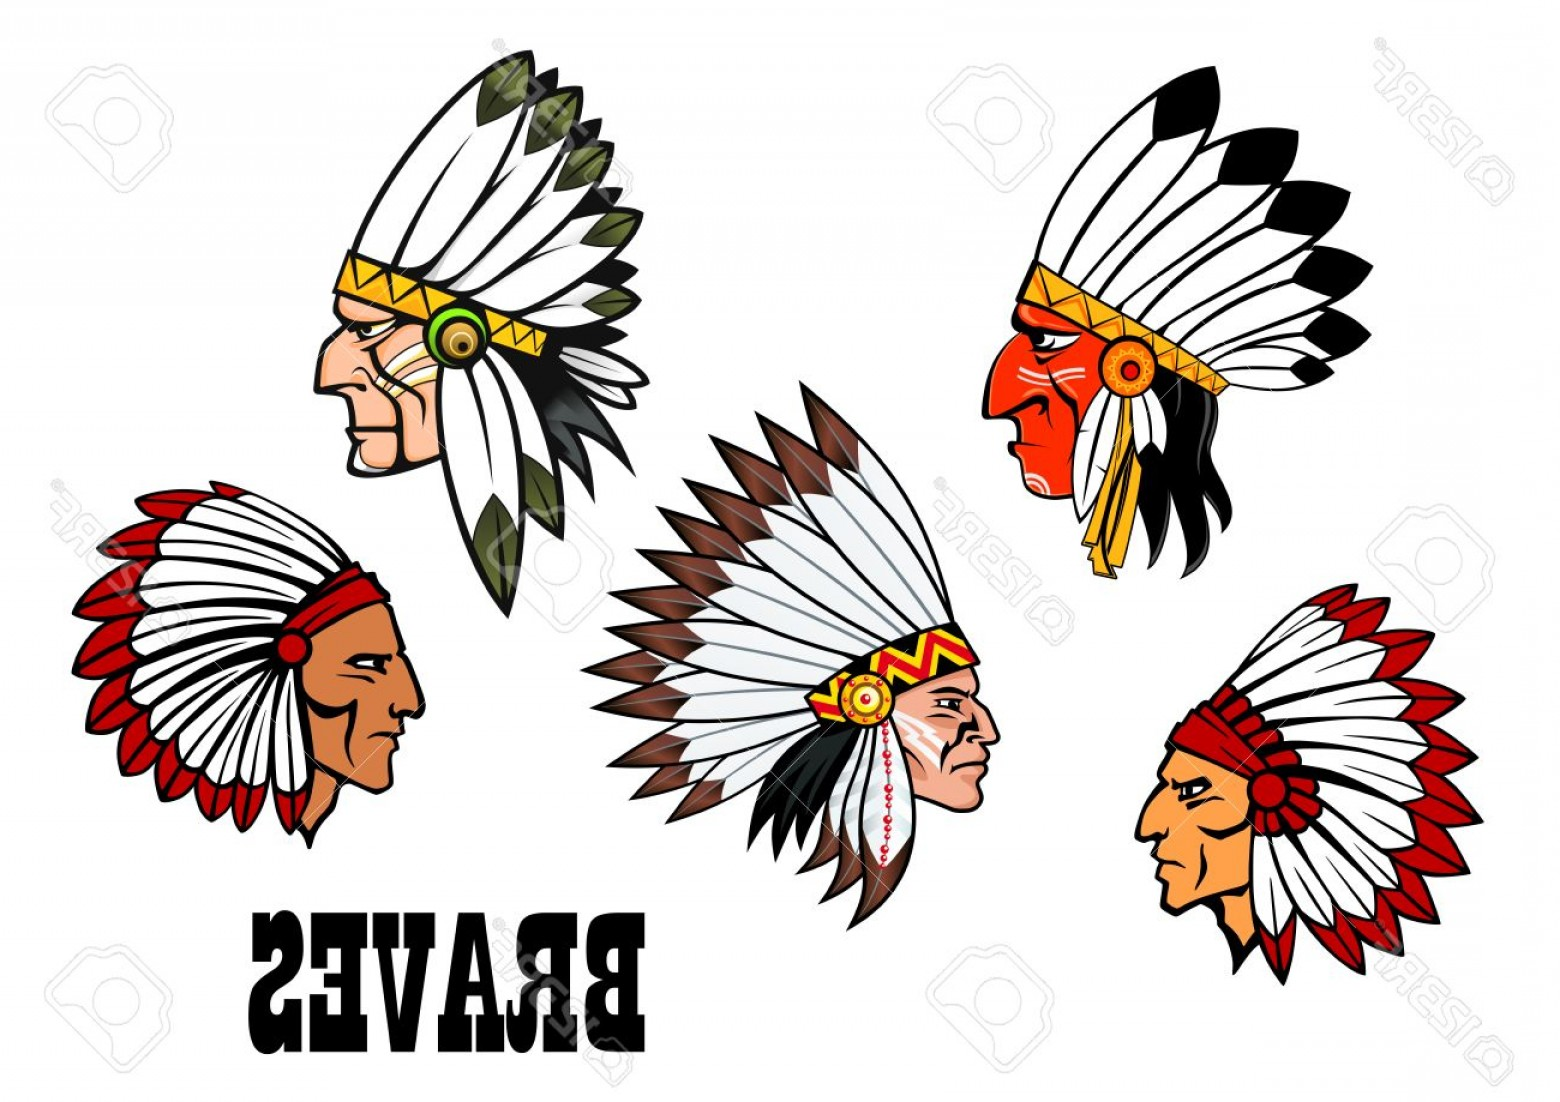 Braves Logo Vector: Photostock Vector Dolorful Cartoon Native American Indian Braves Heads Wearing Feathered Headdresses Side View In Prof